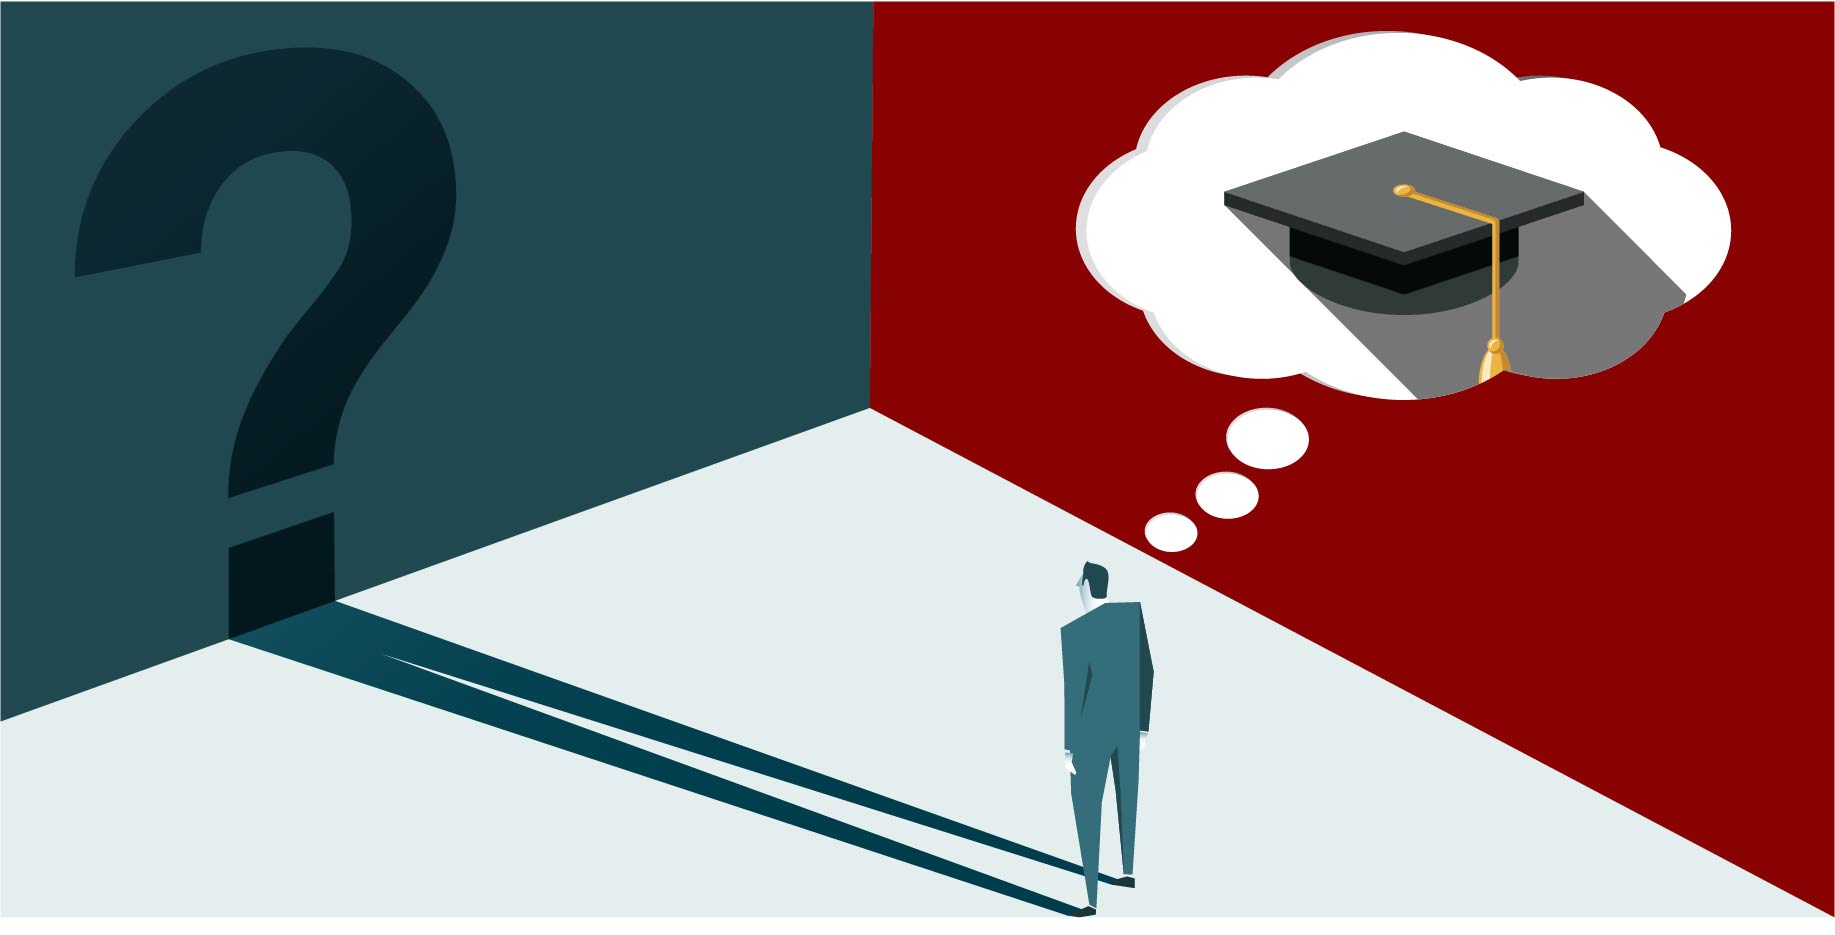 Contemplating MBA - Is business school worth it?